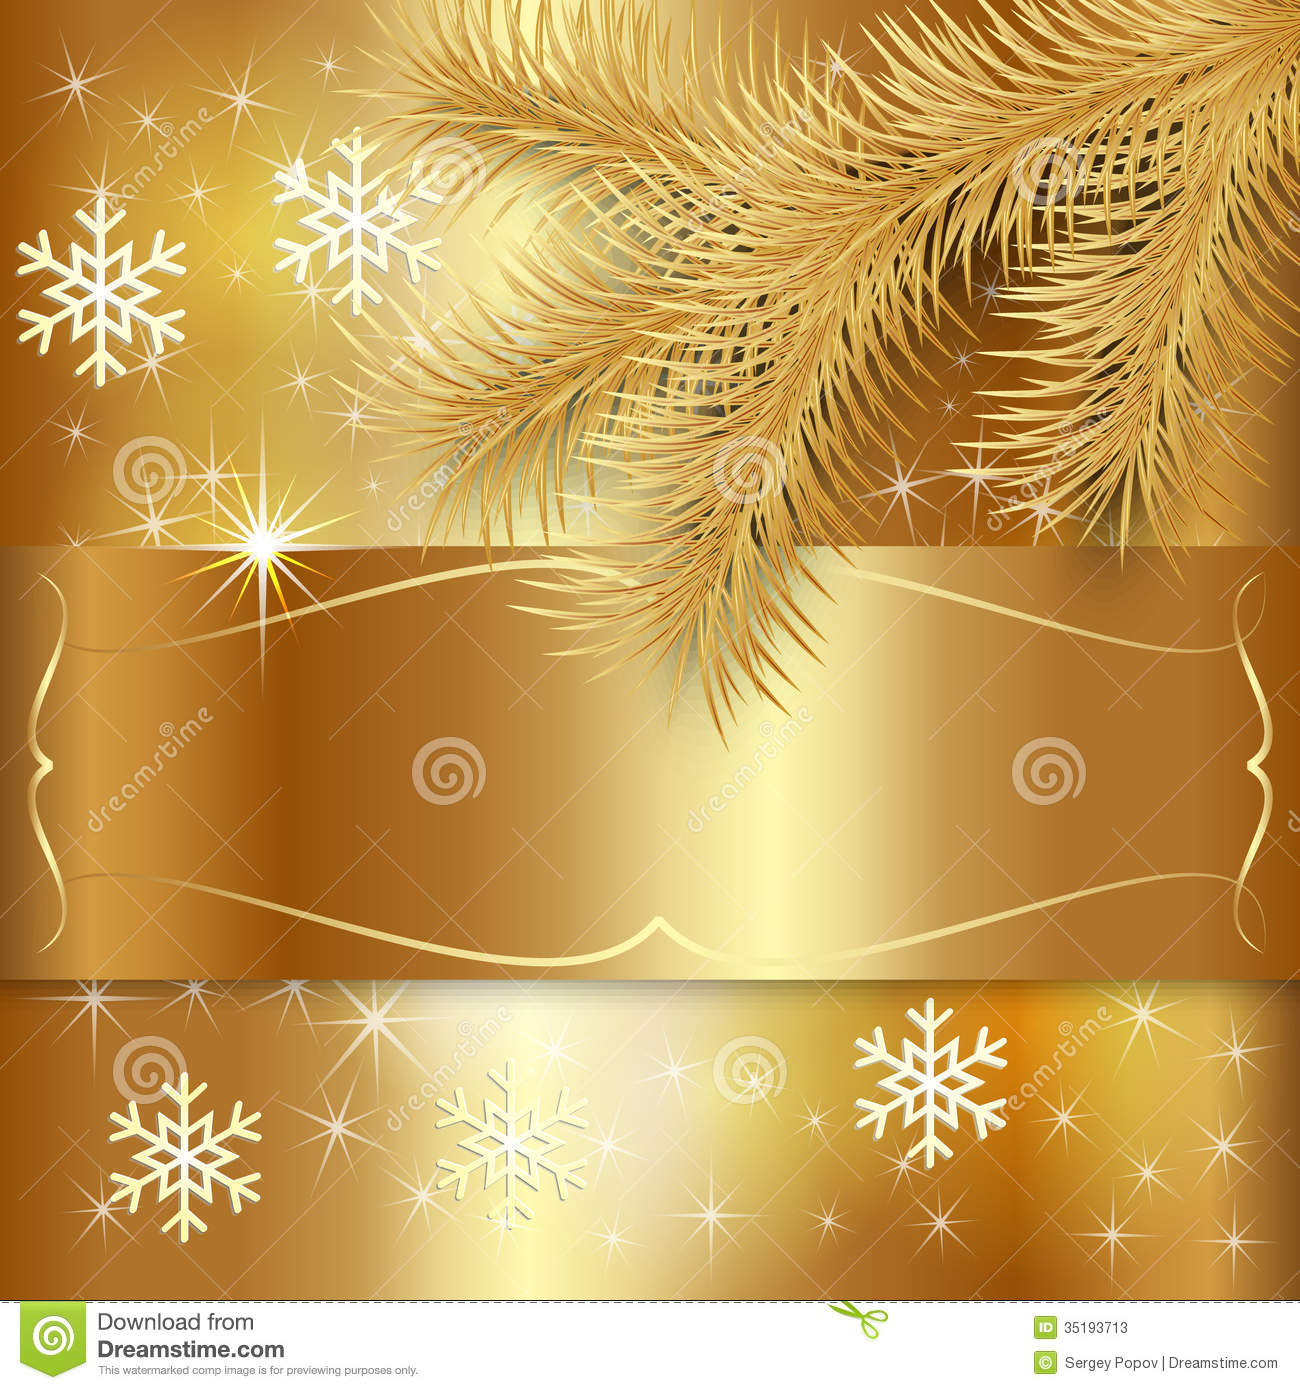 Vector gold christmas holiday greeting card stock vector vector gold christmas holiday greeting card kristyandbryce Images